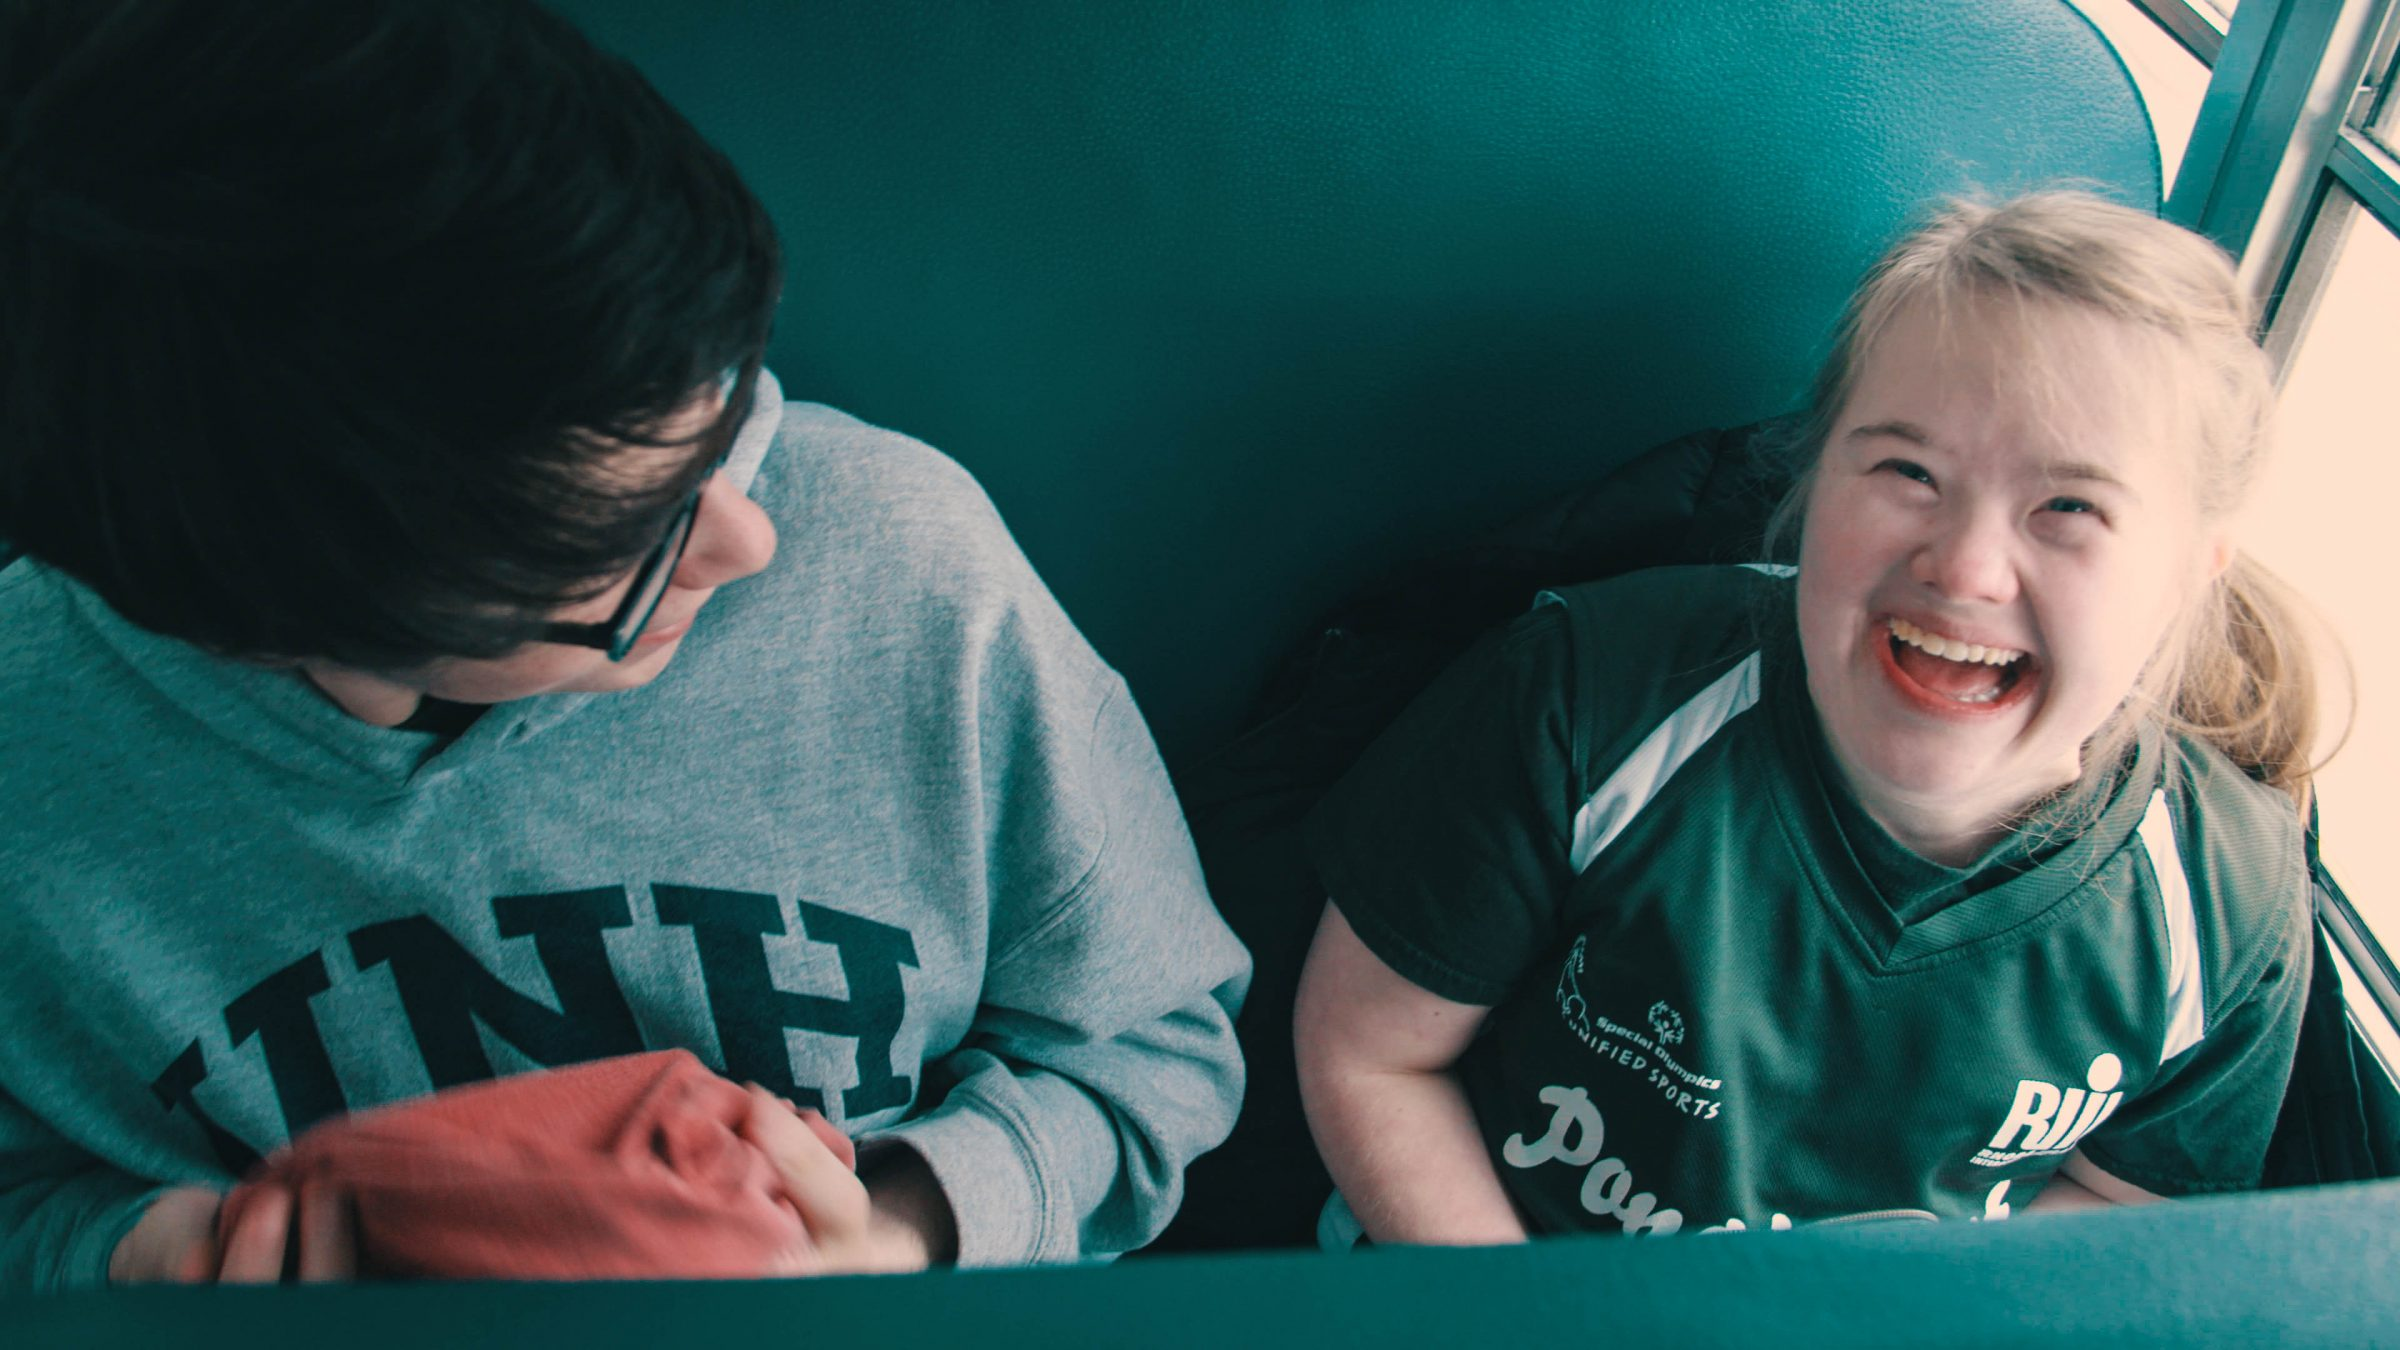 Kate DeCotis and a classmate sitting on the bus. Kate is smiling at the camera.